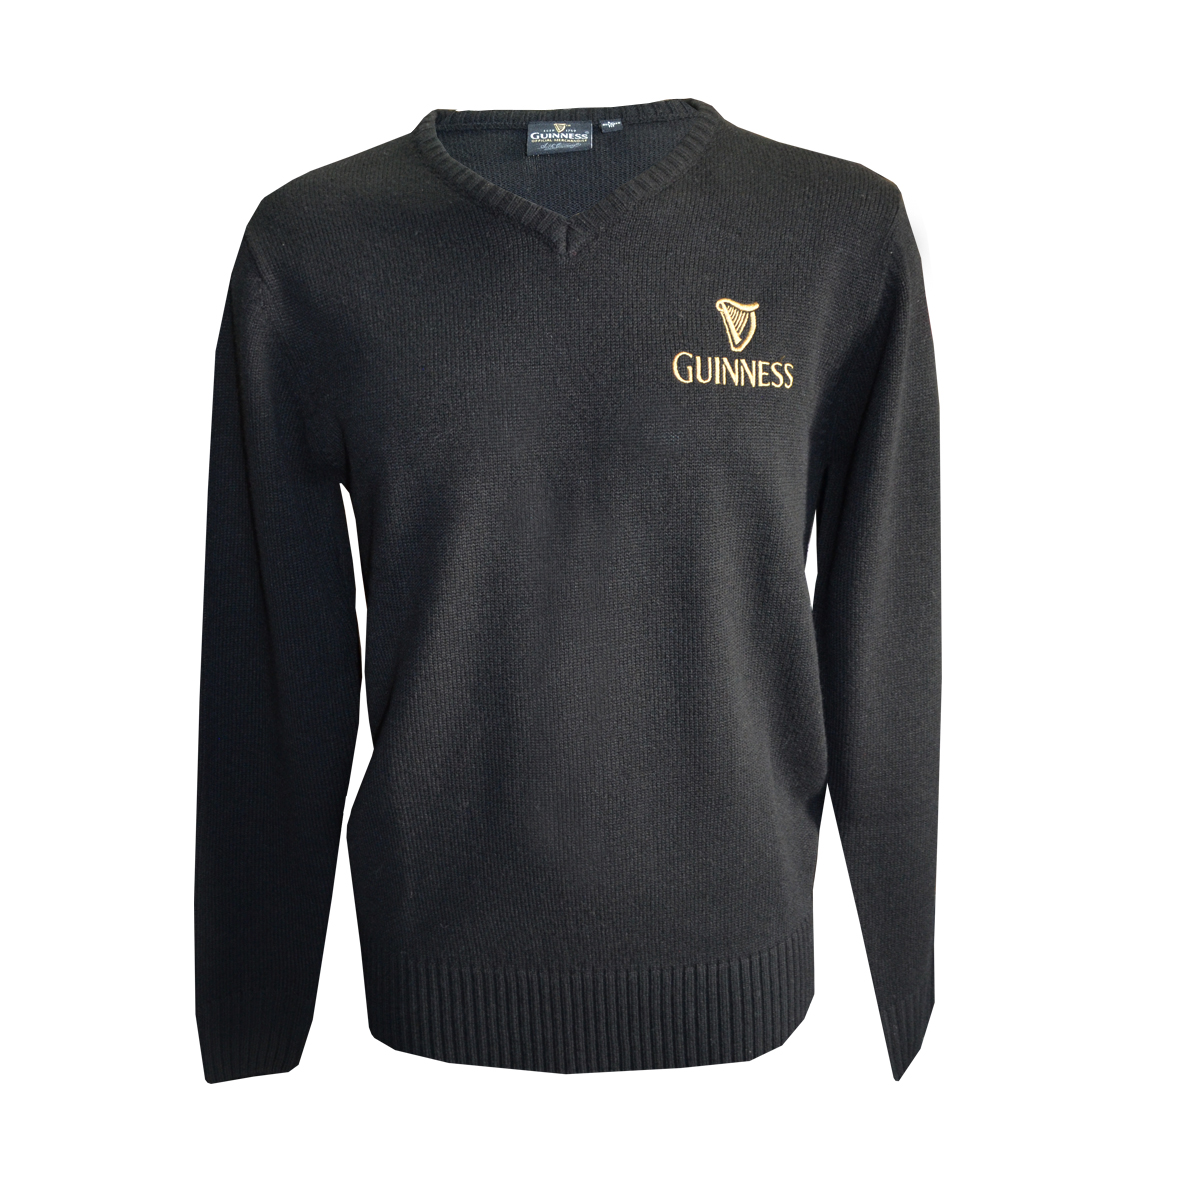 Guinness Black V Neck Gold Harp Emblem Sweater (S-XXL) - Click Image to Close